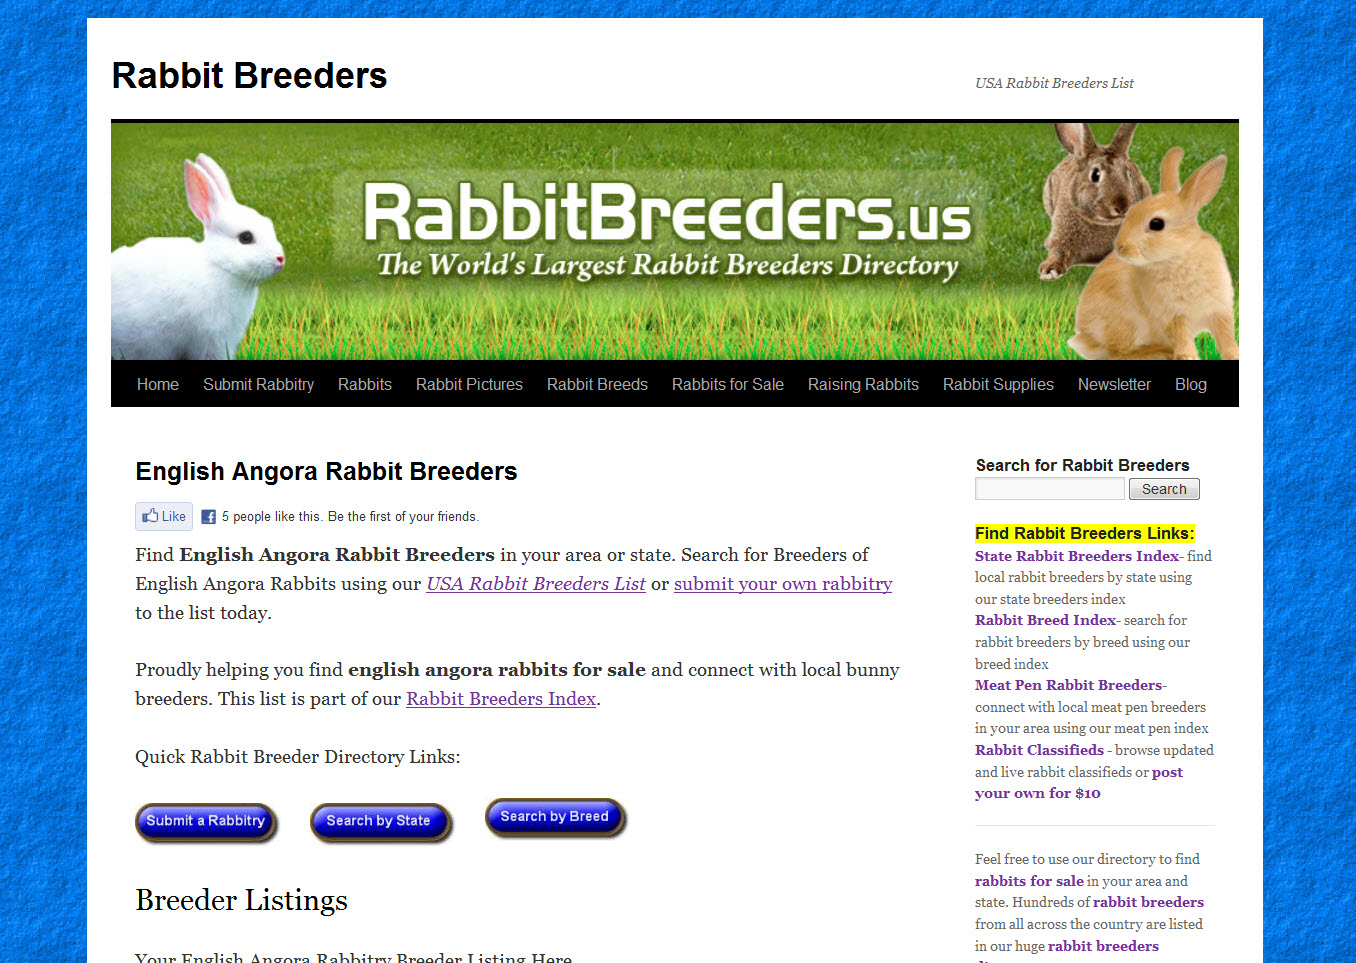 English Angora Rabbit Breeders